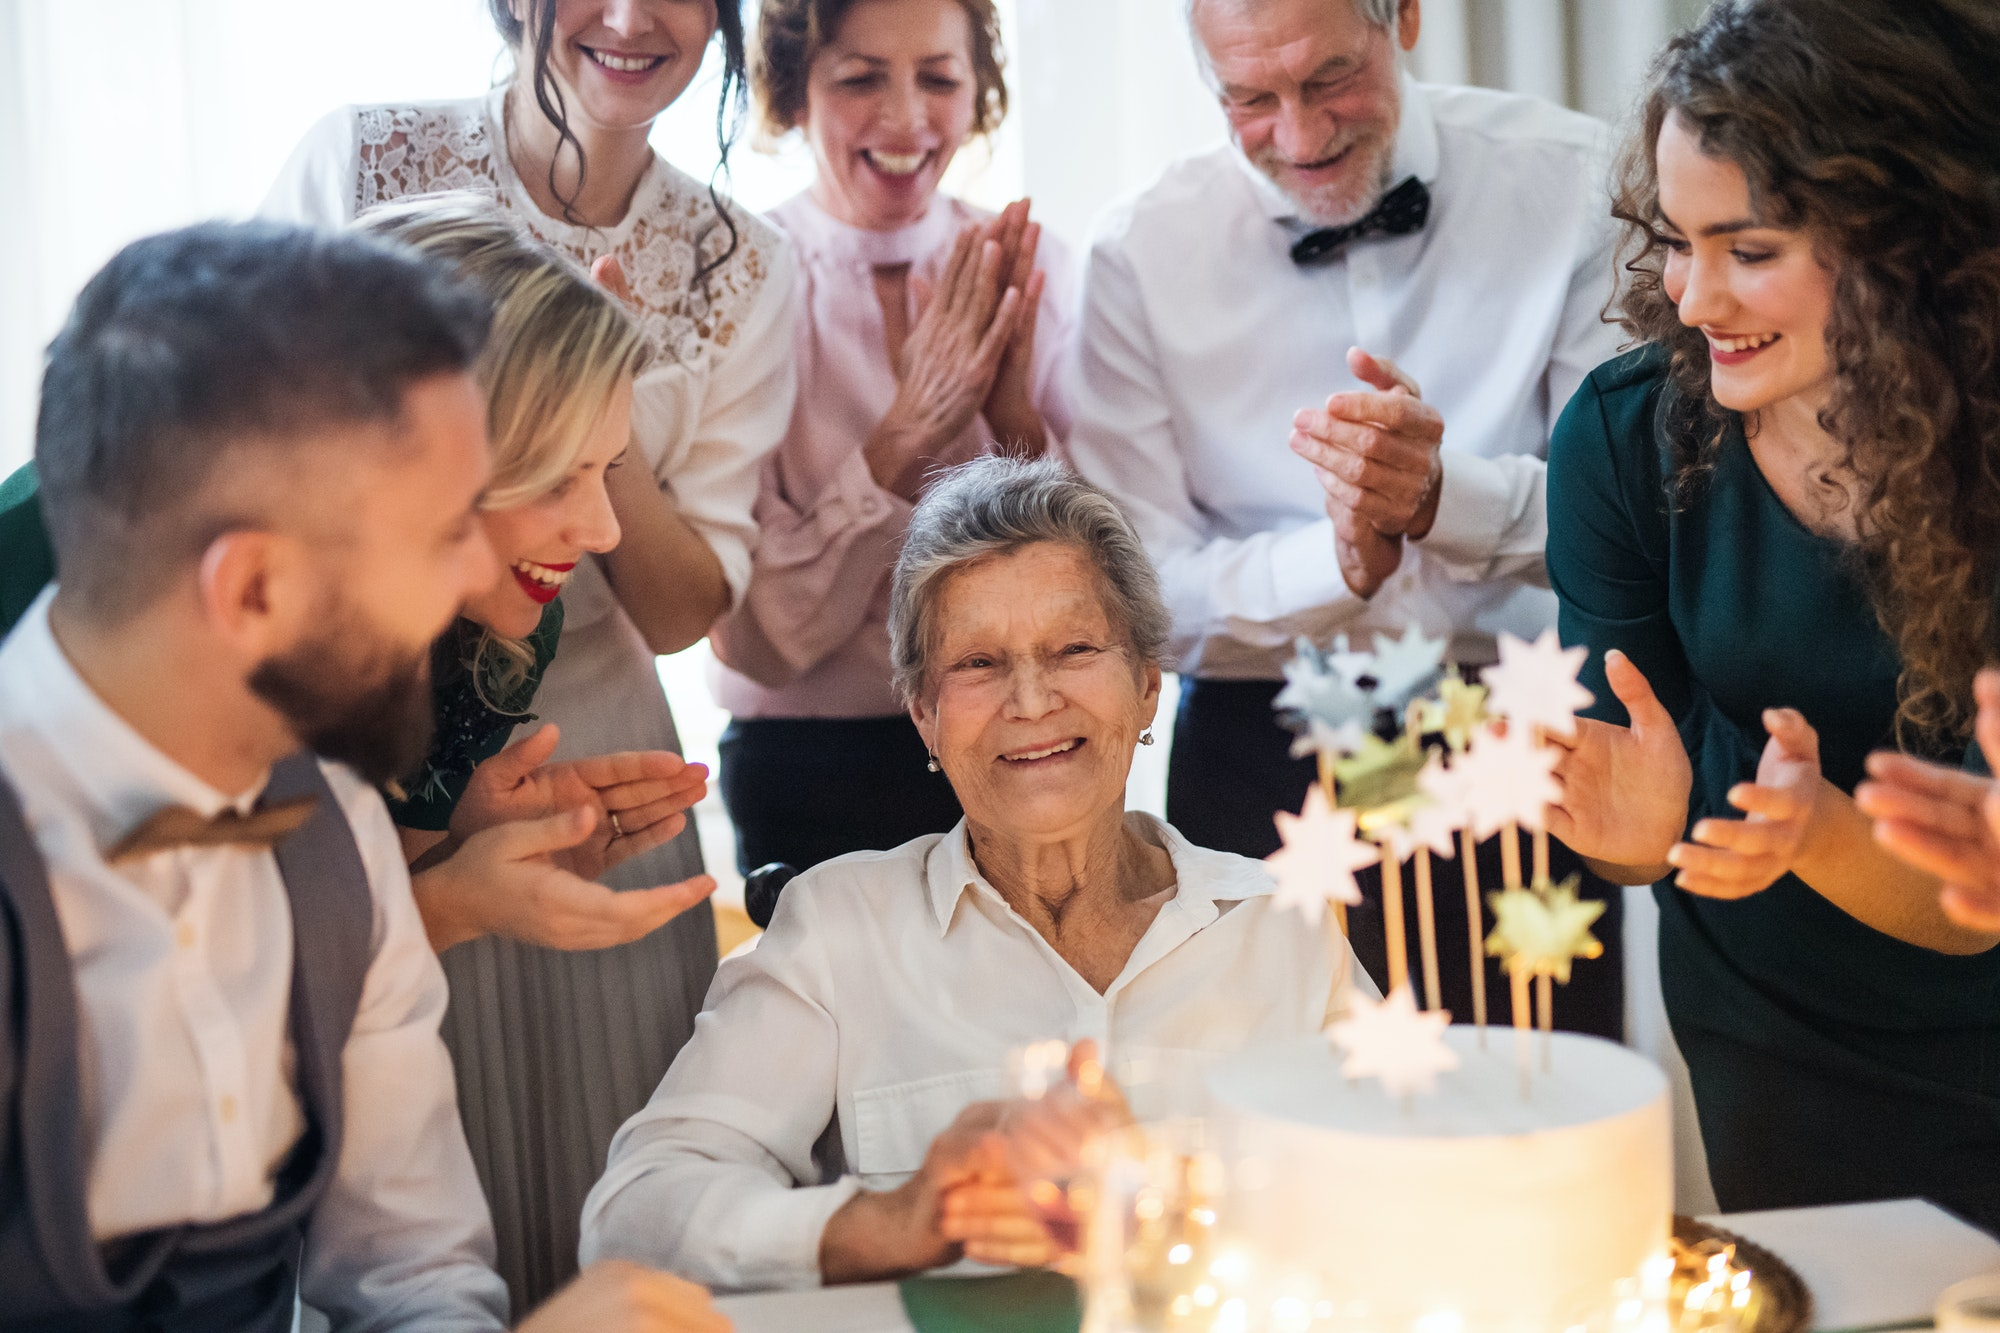 An elderly woman with multigeneration family celebrating birthday on indoor party.